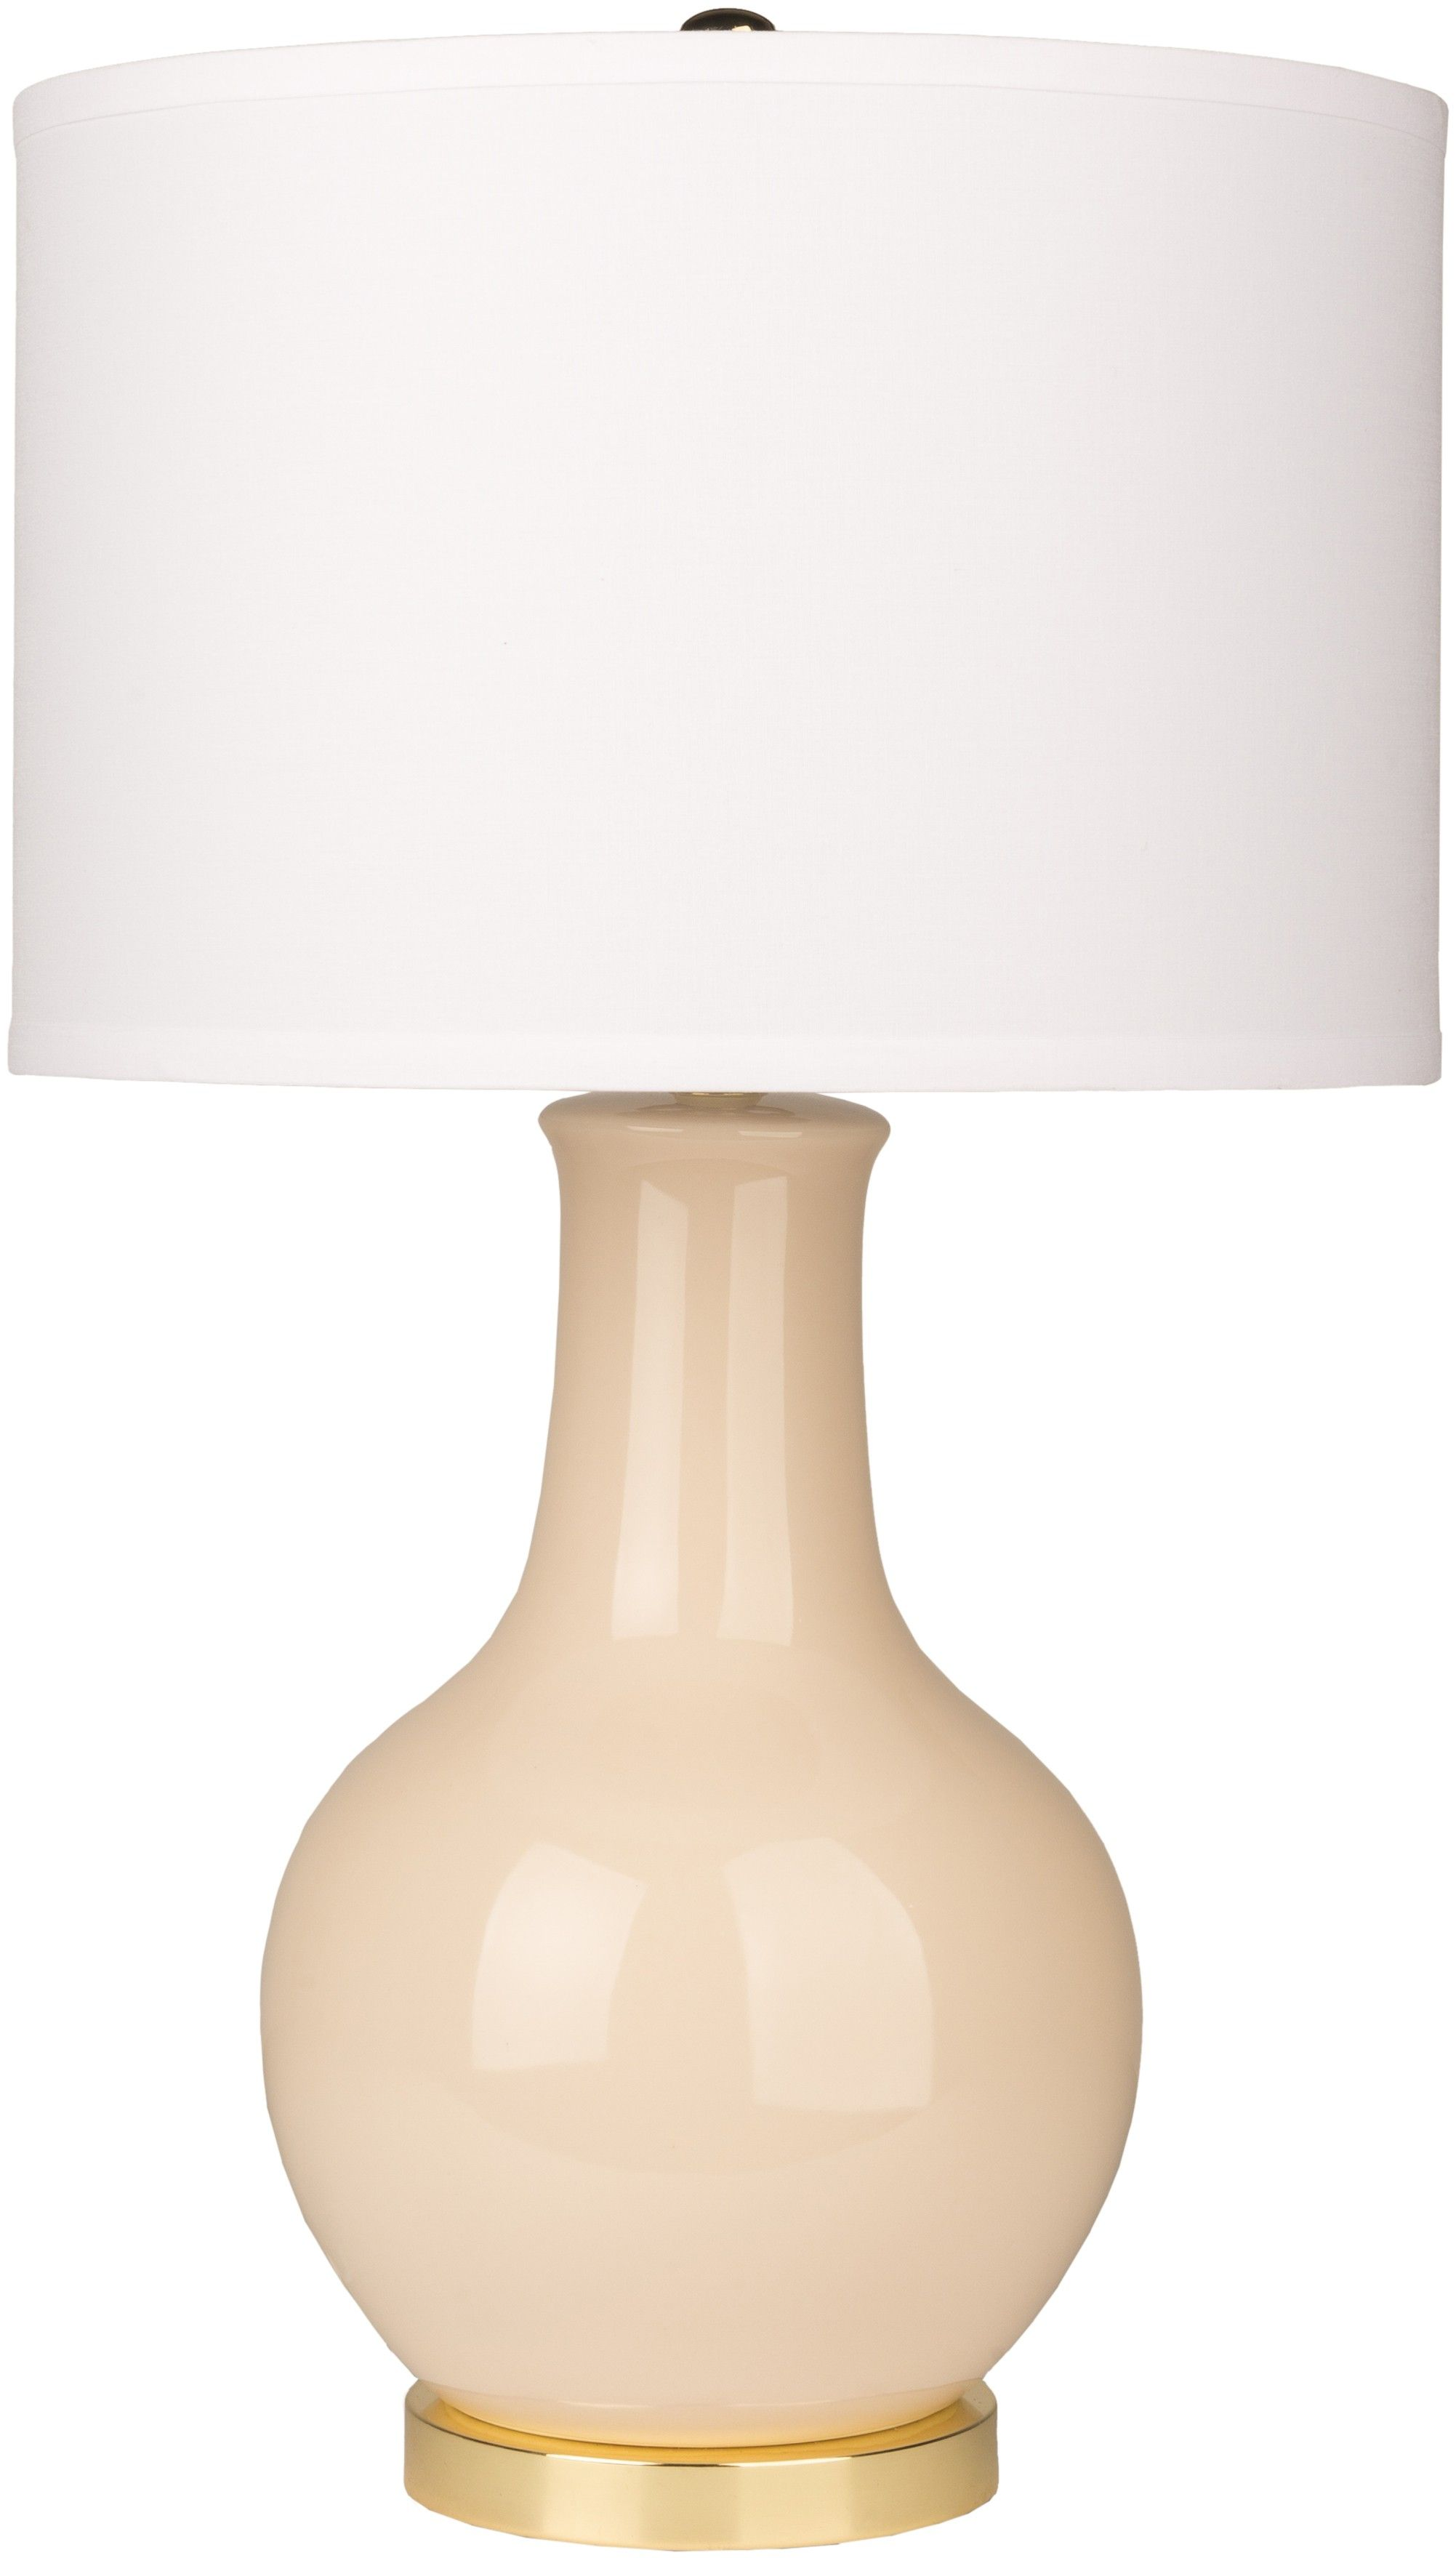 The classic Audrey Lamp is ready to make a colorful impact in your ...